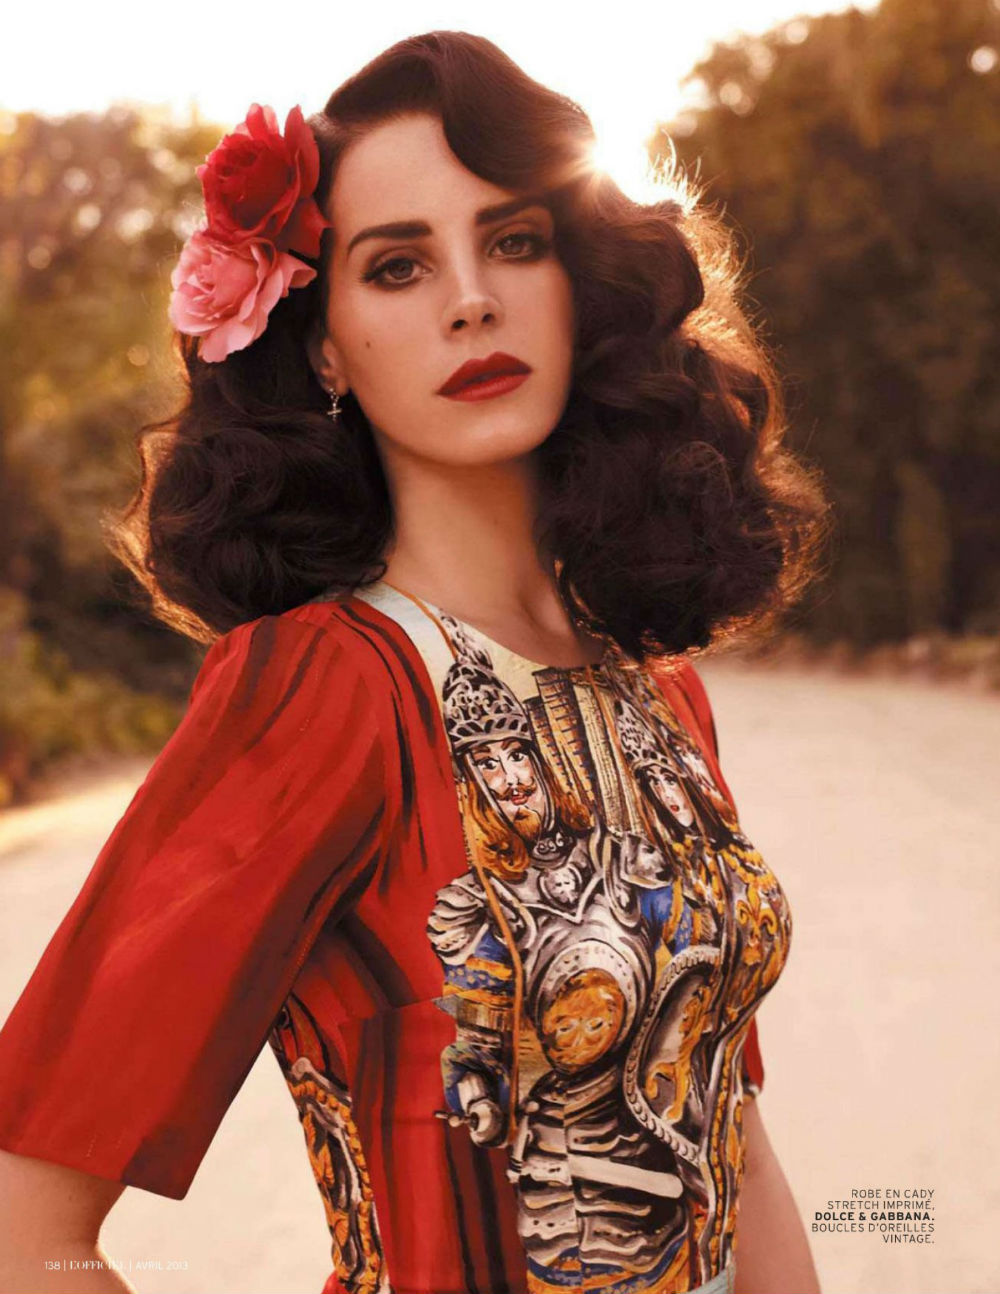 coldwinterbreeze:  Lana Del Rey by Nicole Nodland for L'Officiel Paris April 2013      I don't know who this is, but she's beautiful.